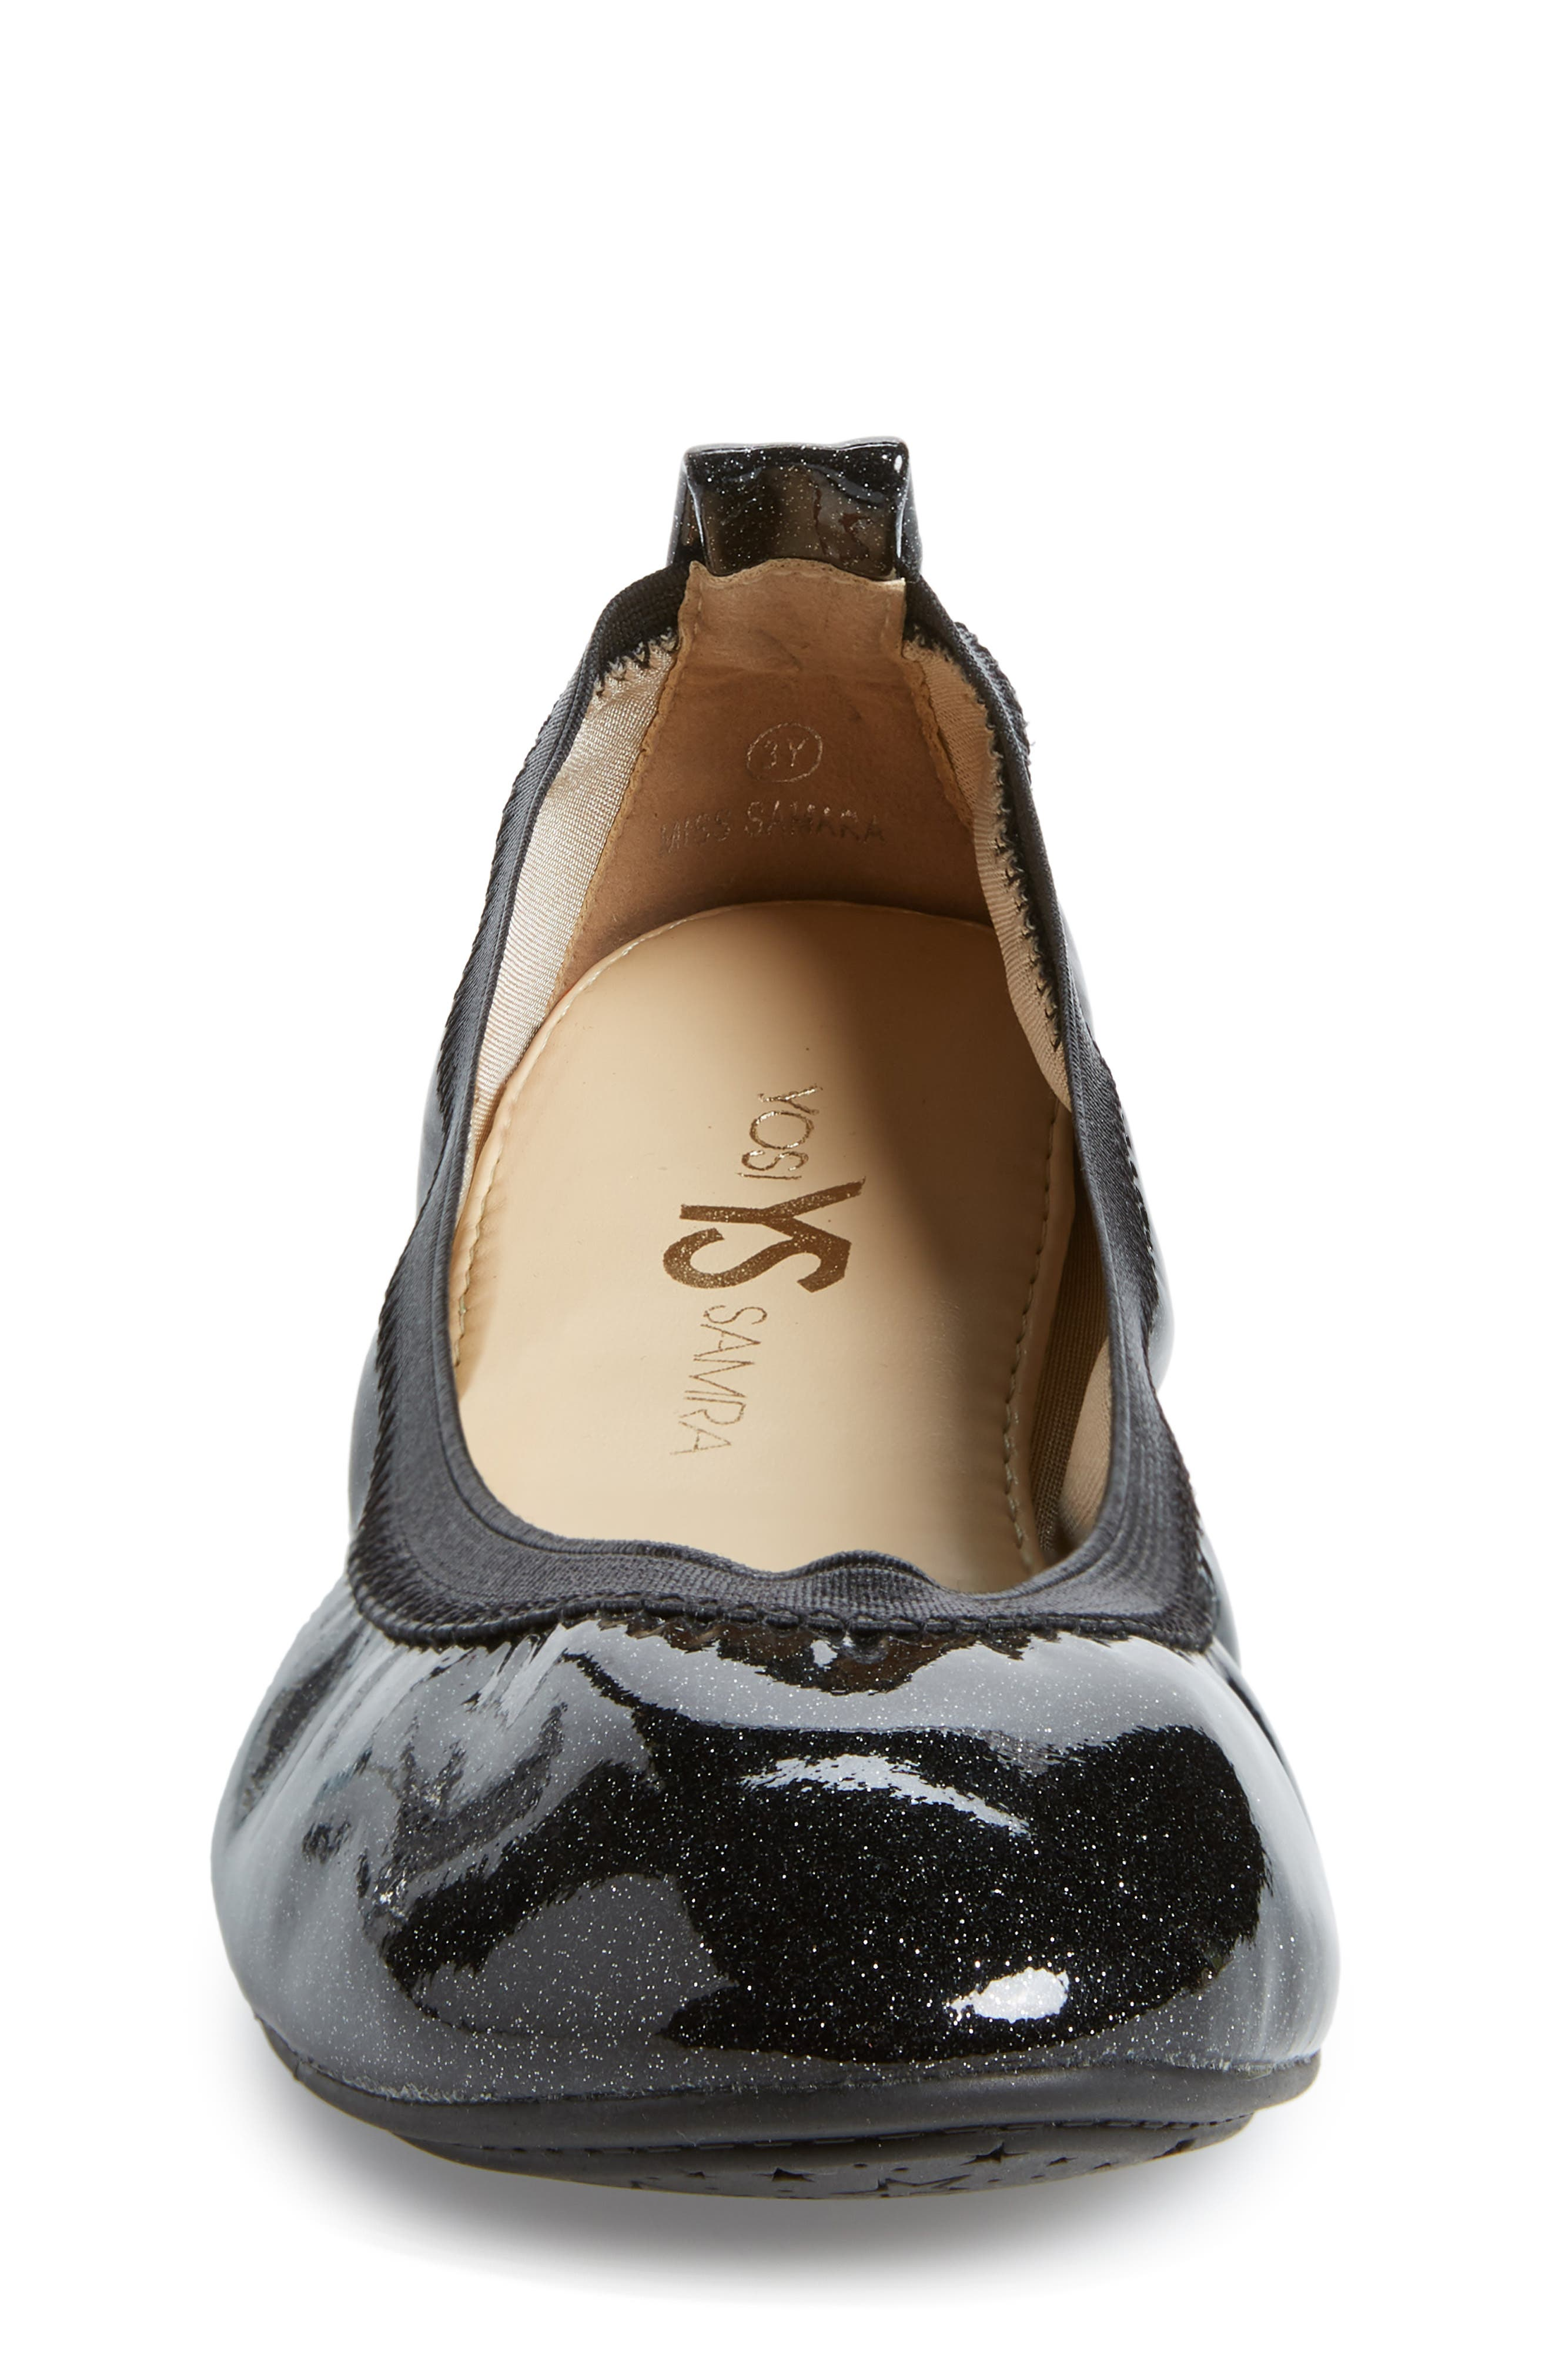 Miss Samara Ballet Flat,                             Alternate thumbnail 4, color,                             BLACK PATENT GLITTER